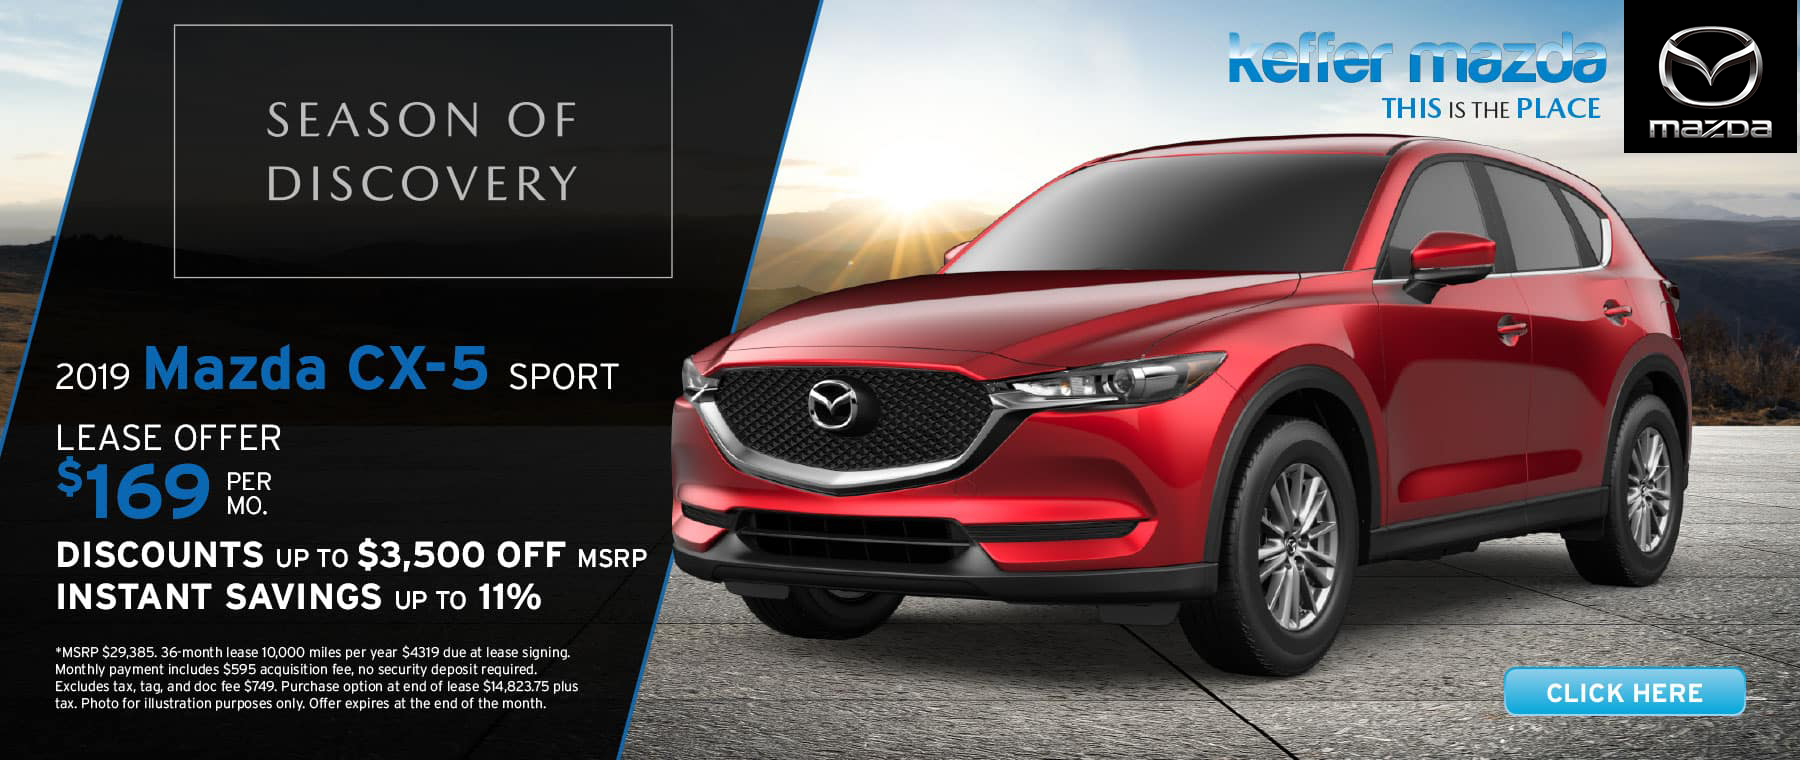 2019 Mazda CX-5 Sport up to 11% off